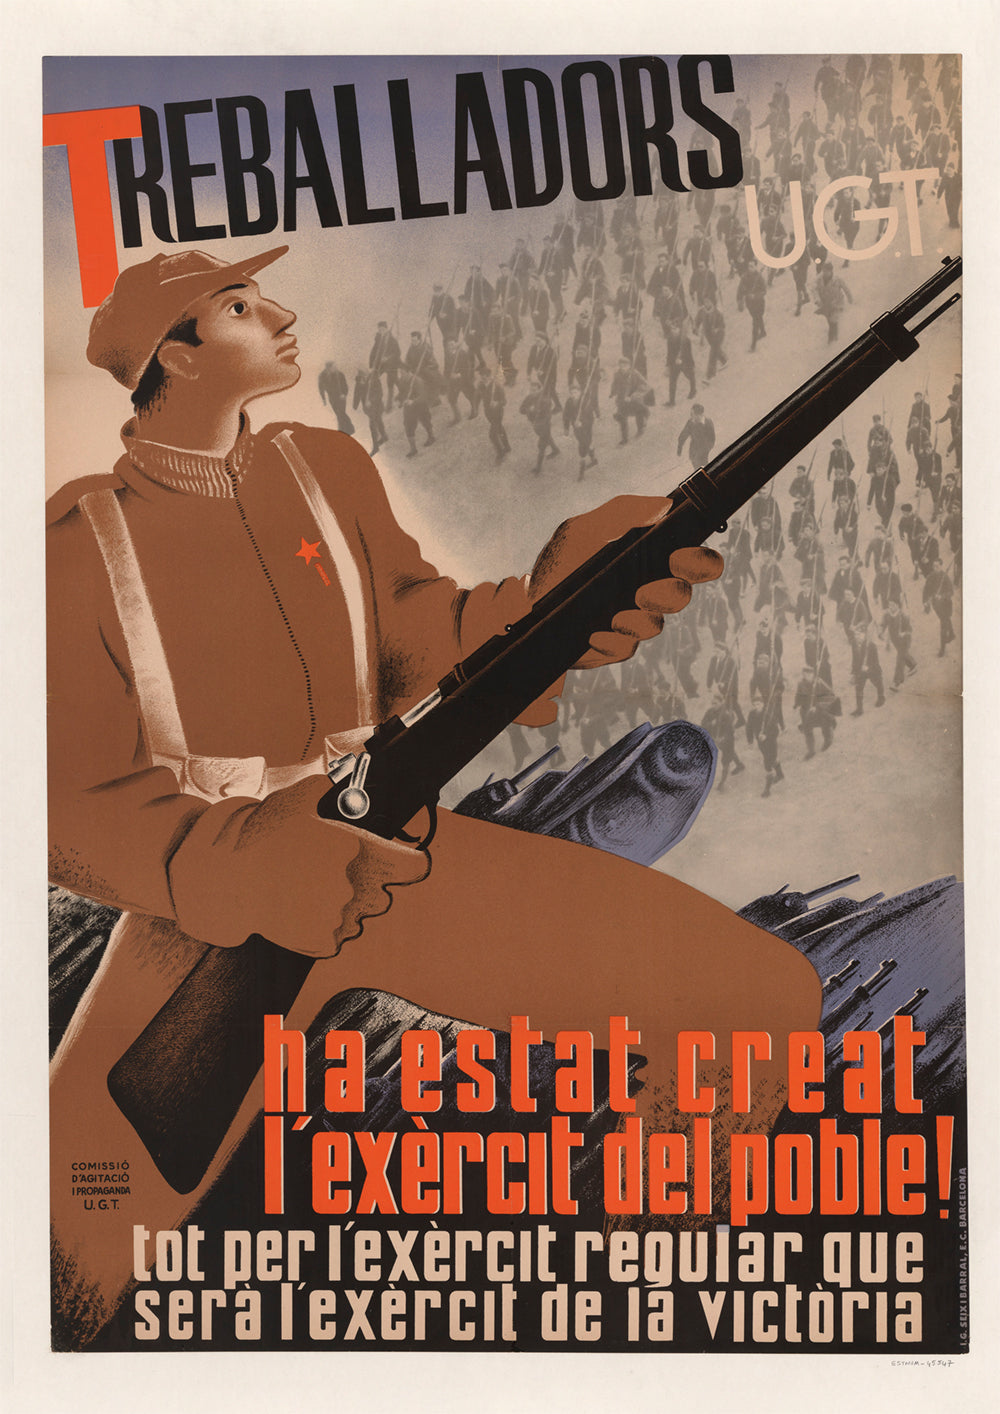 Workers, the people's army has been created! – Spanish Civil War poster